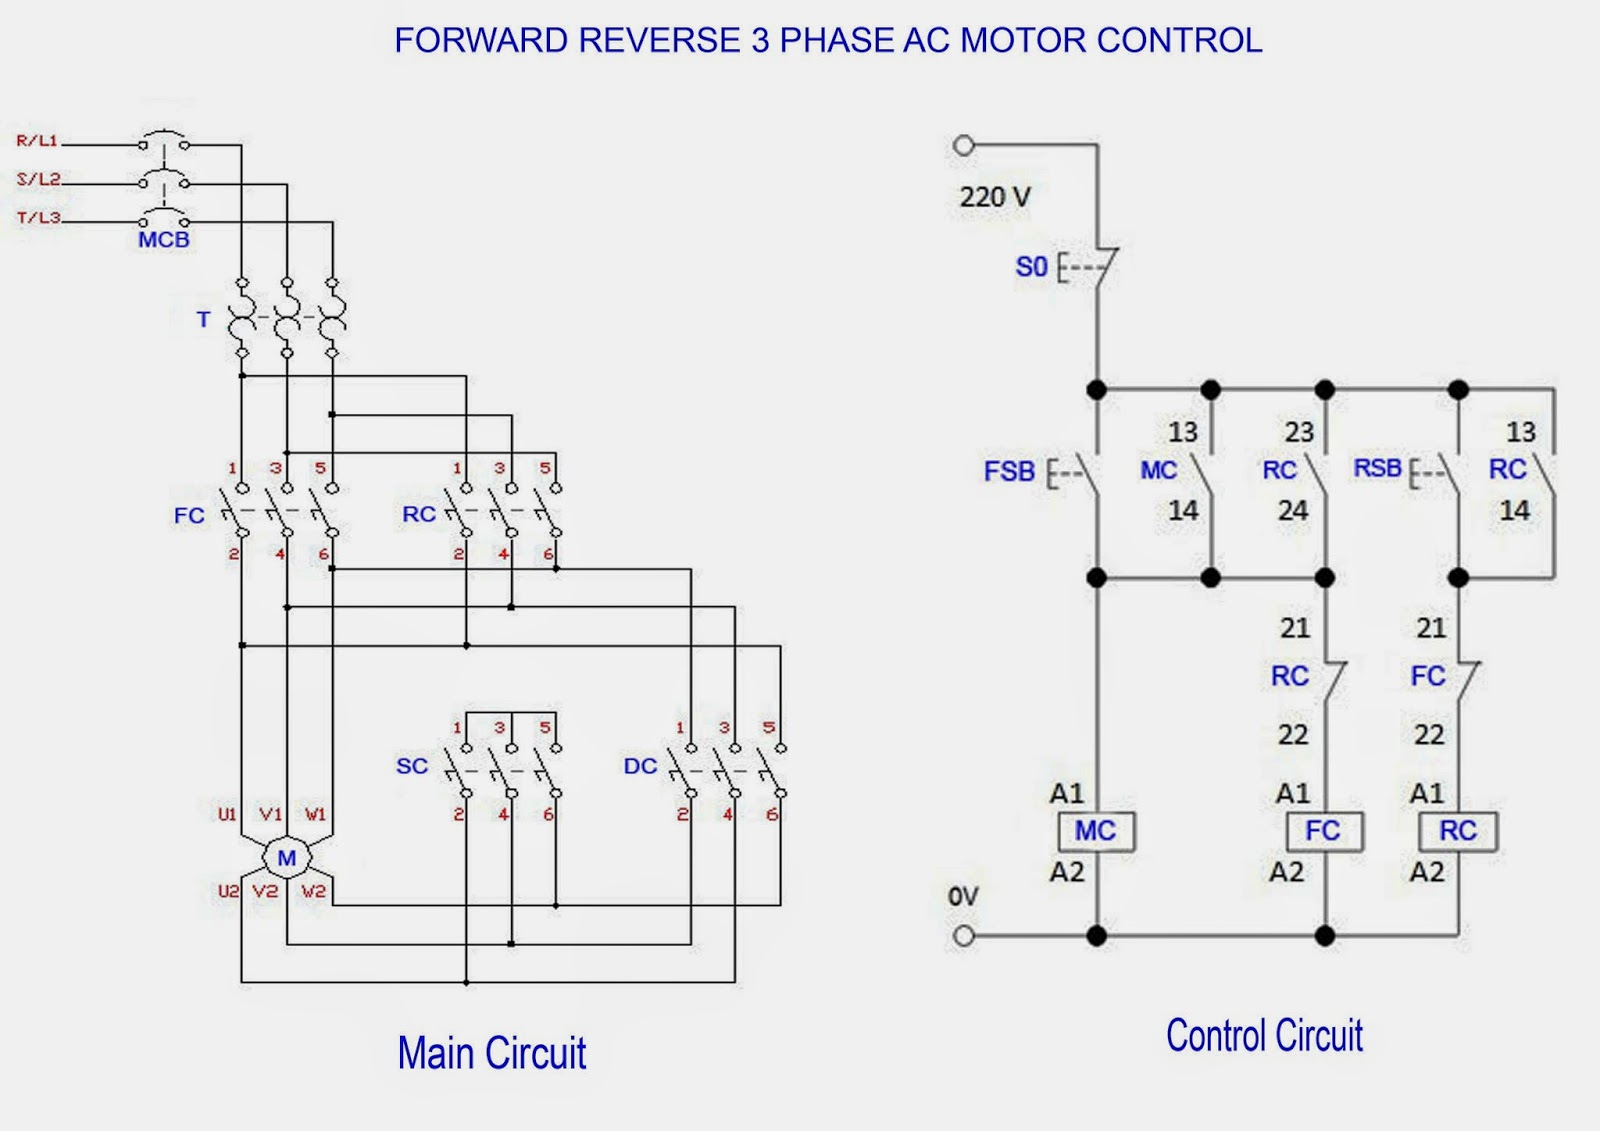 wiring diagram three phase contactor with Forward Reverse 3 Phase Ac Motor on 208v Motor Wiring Diagram also Generator Changeover Panels likewise Welder 220 Single Phase Wiring Diagram furthermore Forward Reverse 3 Phase Ac Motor also Watch.